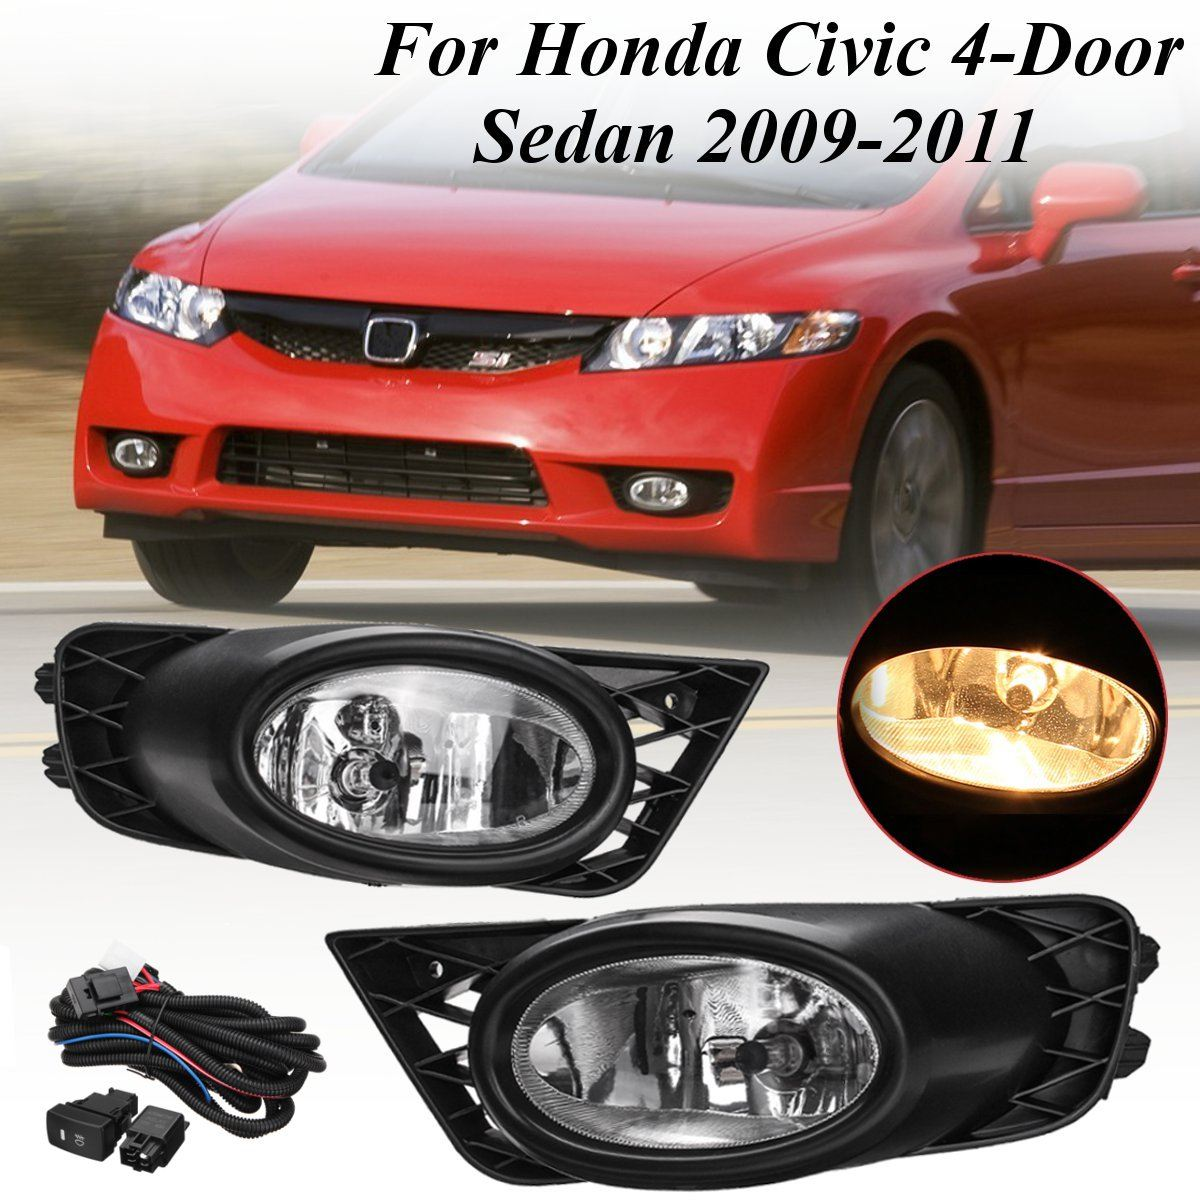 Pair H11 Bumper Driving Fog Lights w/ Harness Replacements For Honda/Civic 4-Door Sedan 2009 2010 2011 55W DC 12V